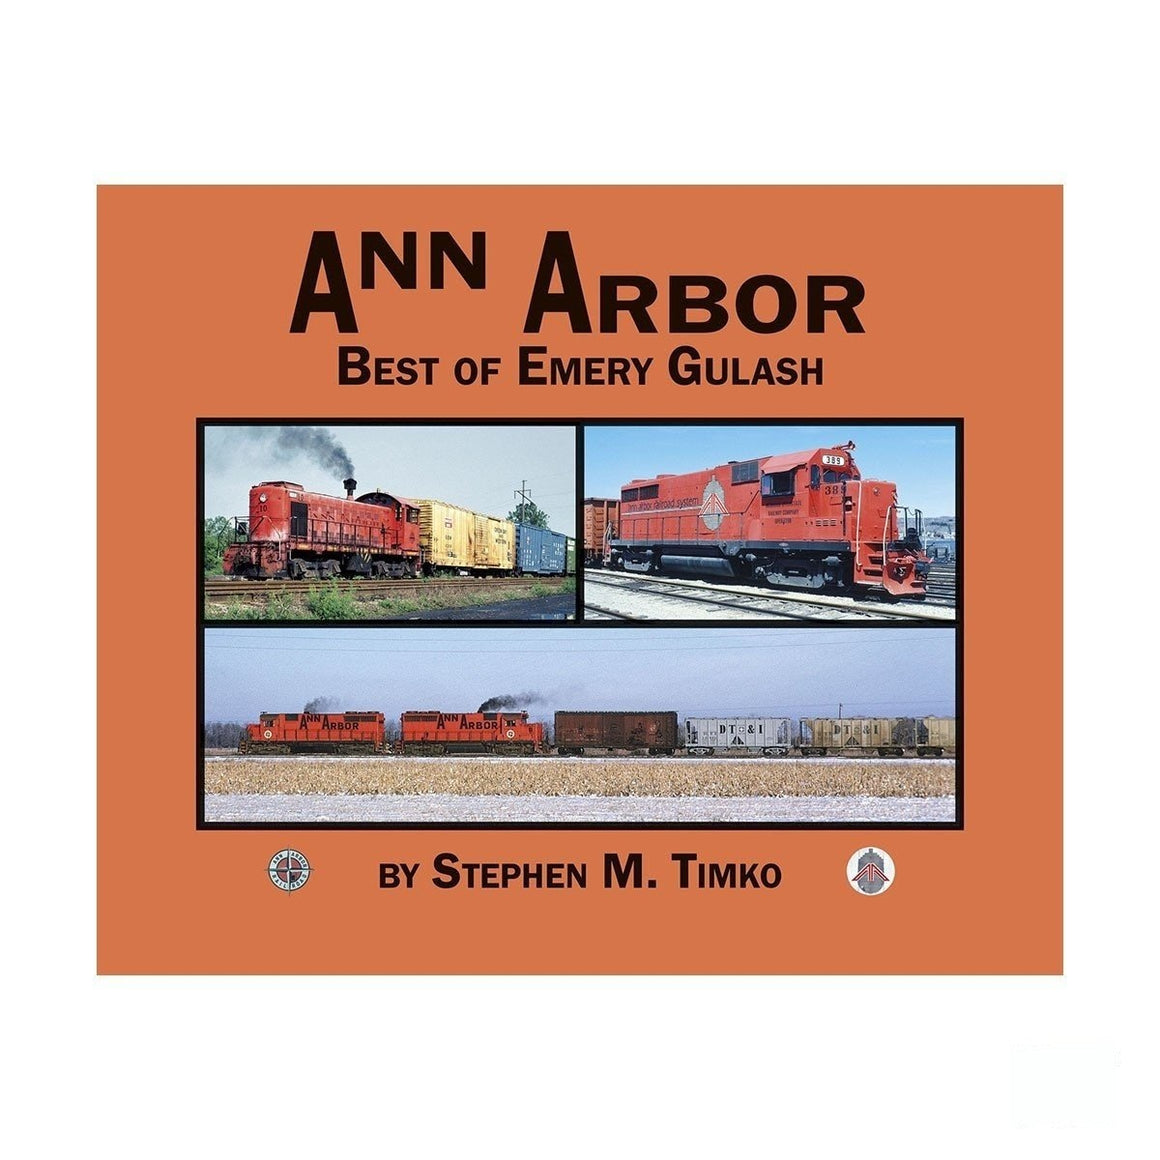 Books: Ann Arbor Best of Emery Gulash